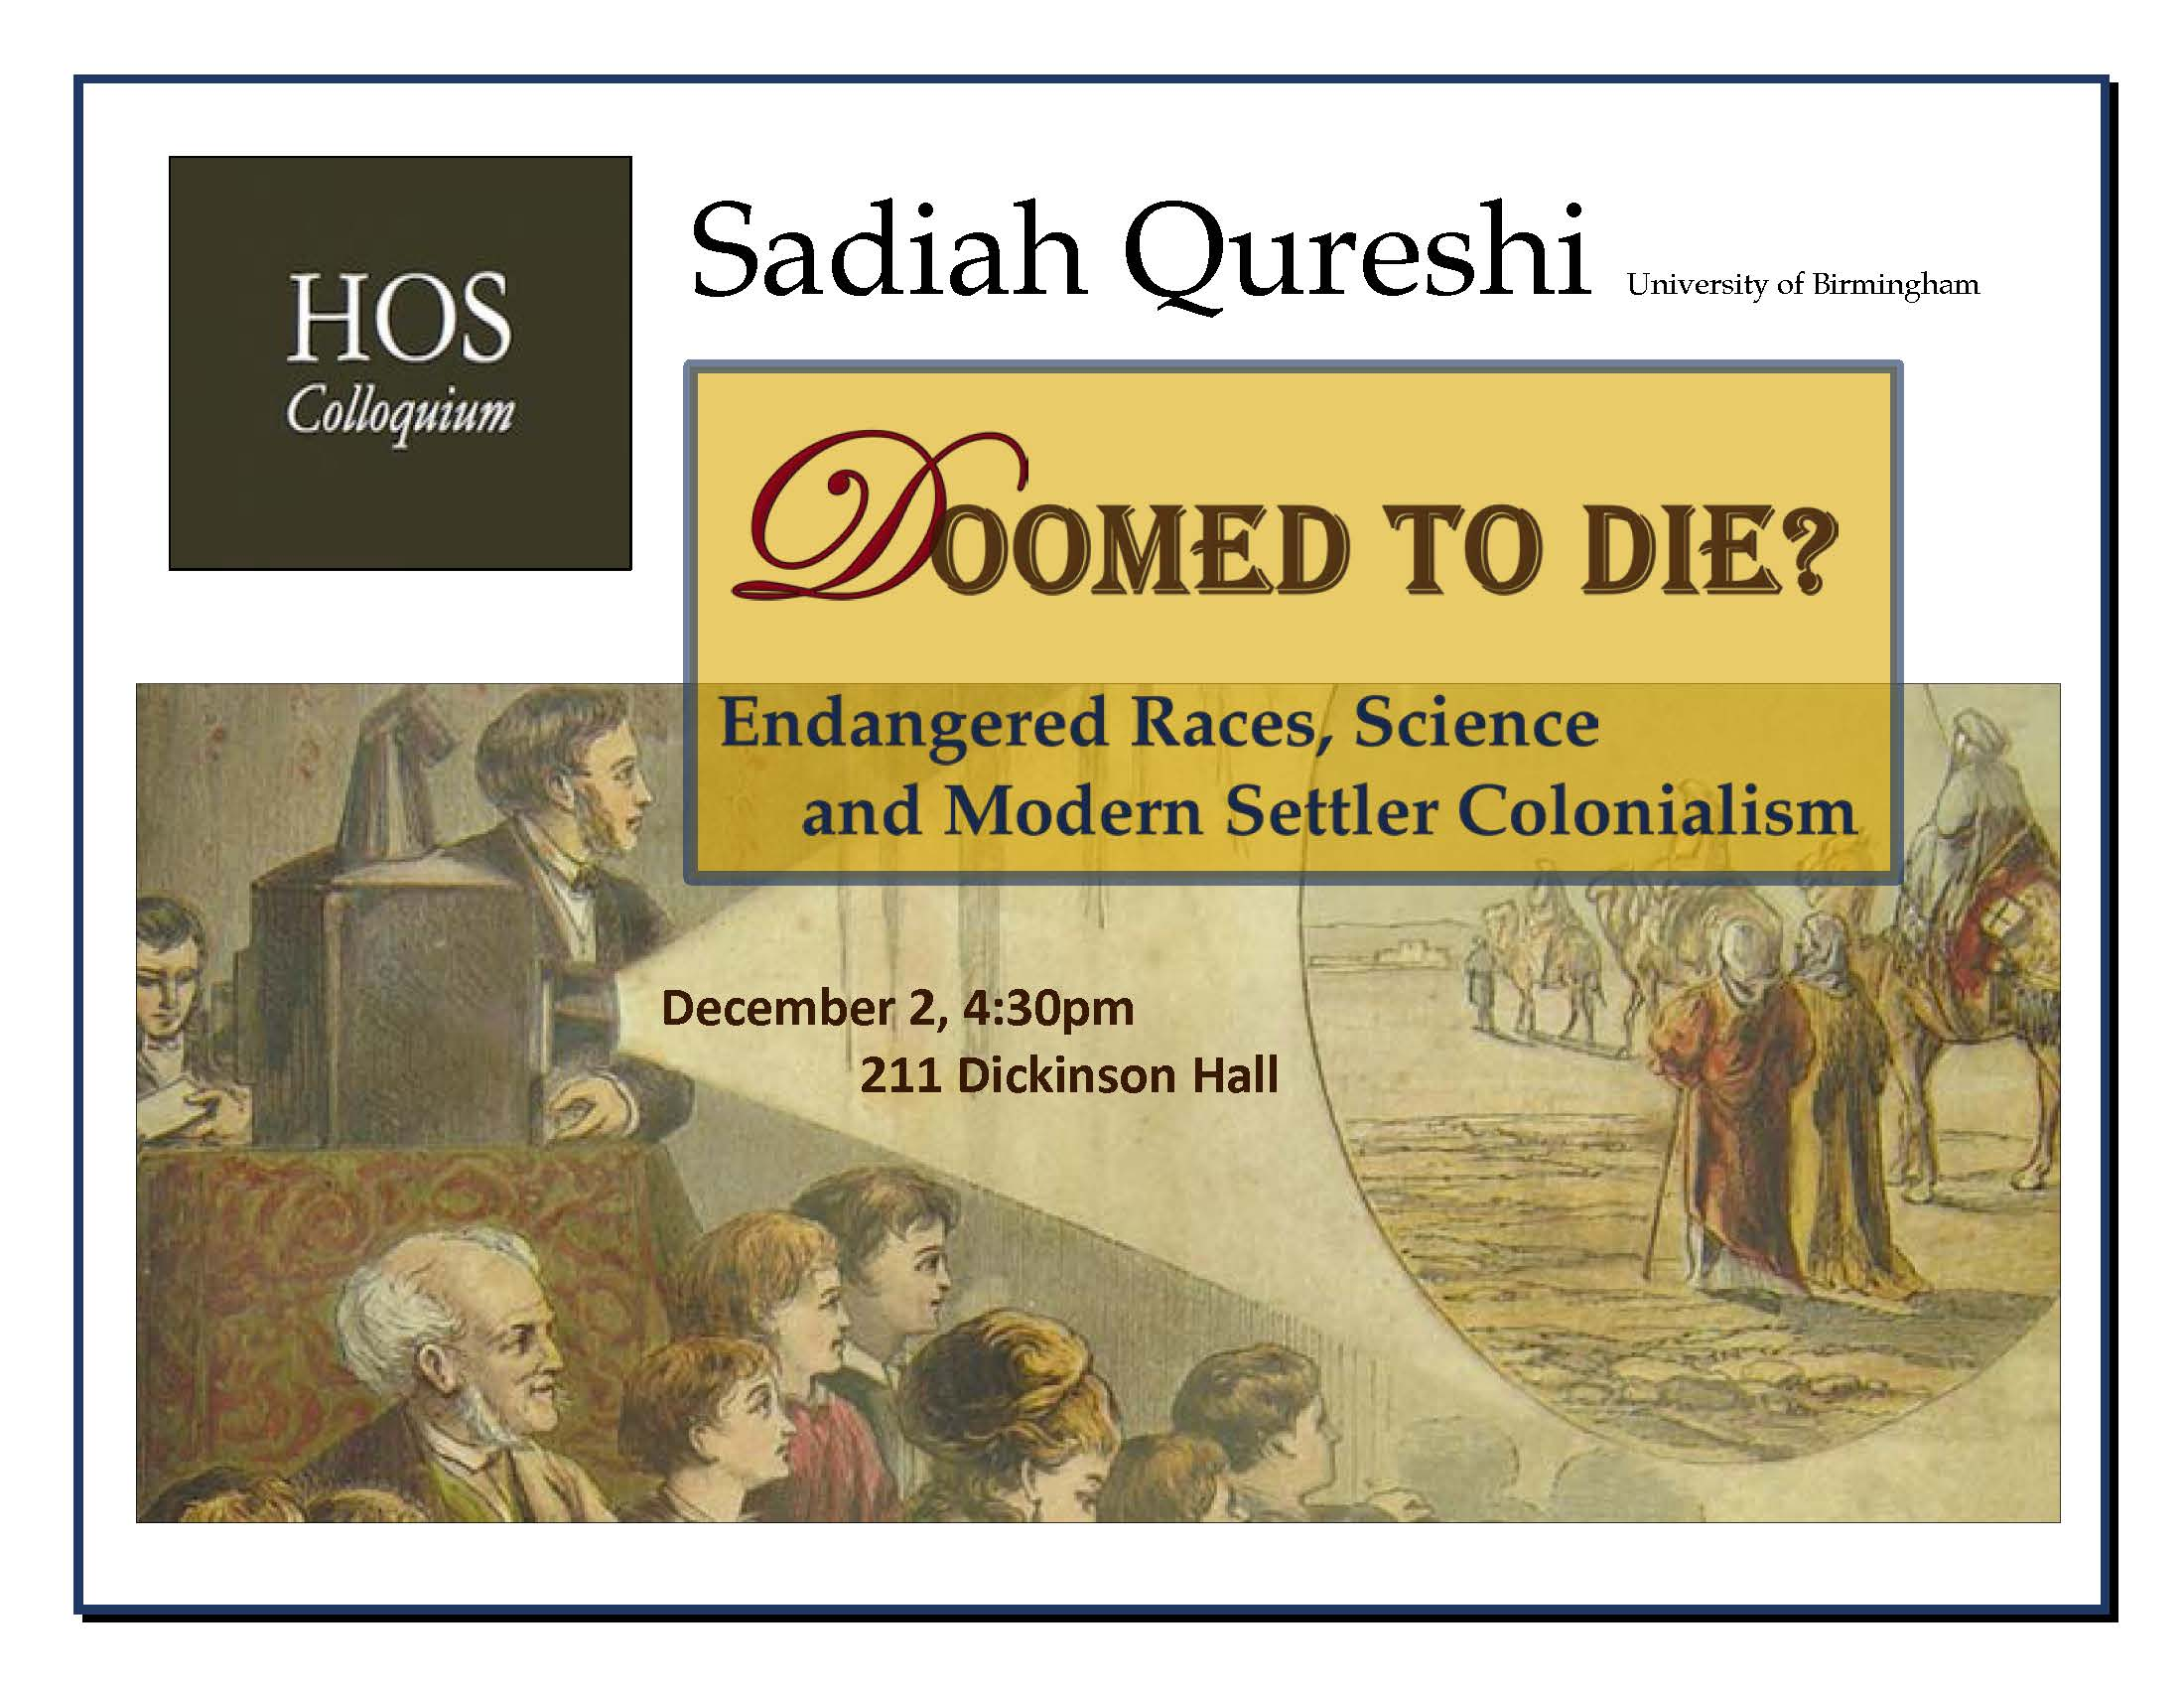 Sadiah Qureshi: Doomed to Die, History of Science Colloquium